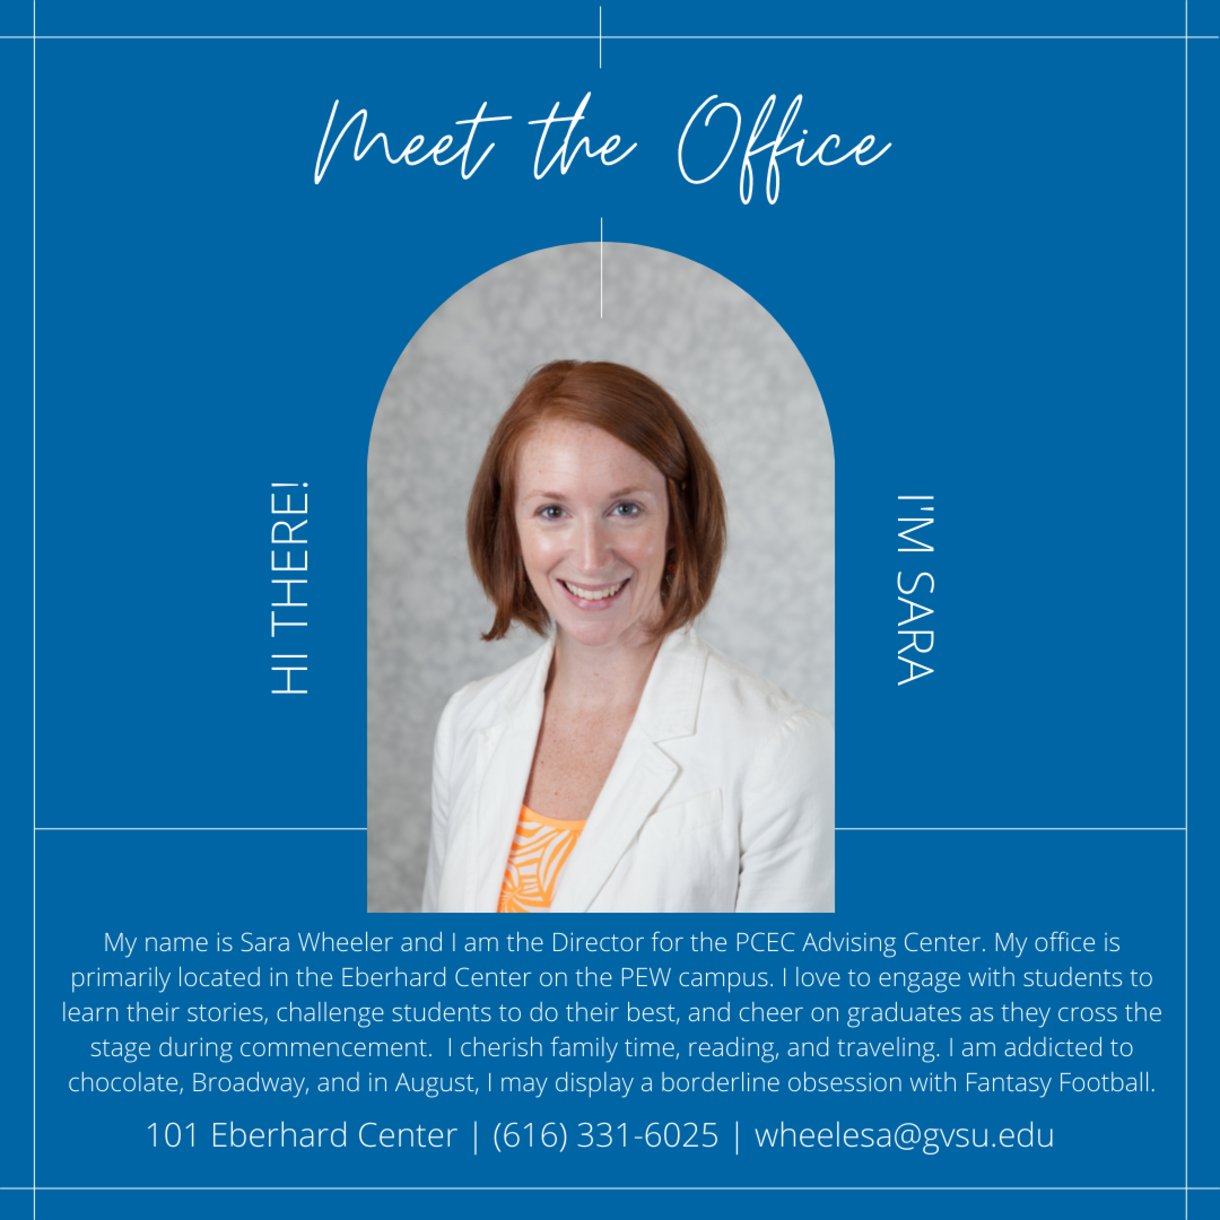 Meet the Office image with text on it about Sara Wheeler